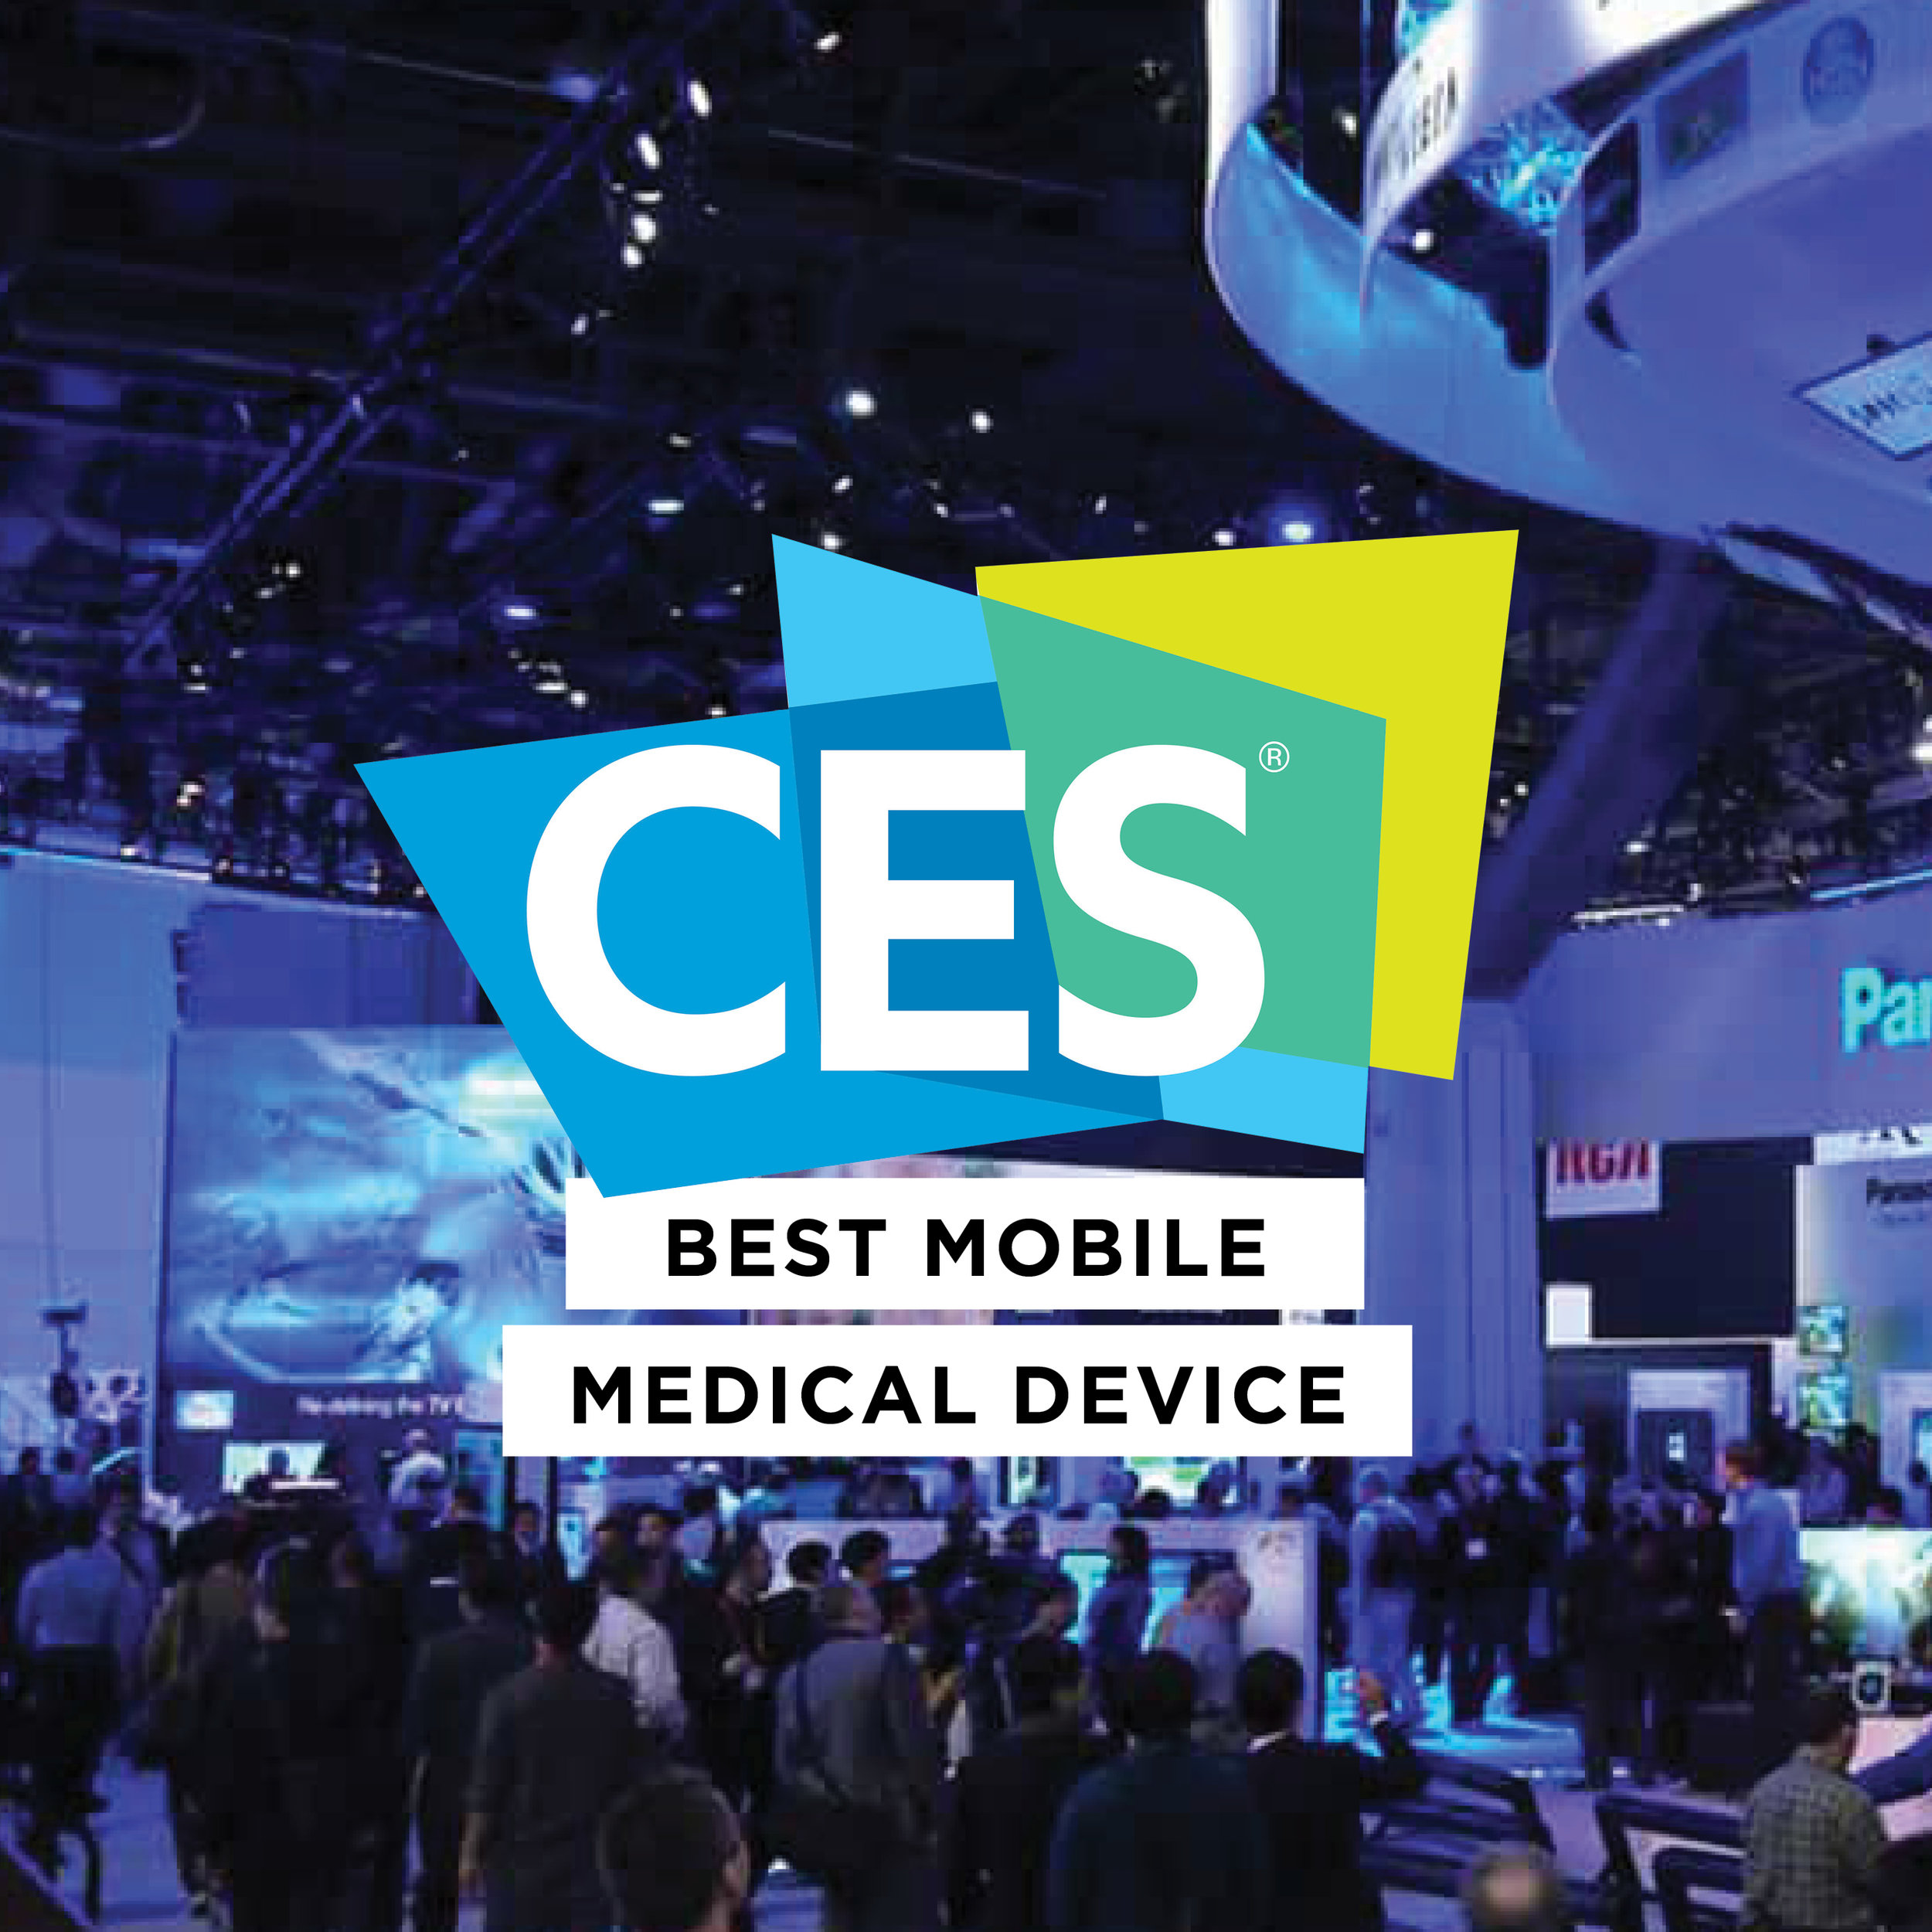 """2019 Winner - Marvel's epic success led to winning Best Mobile Medical Device at the Consumer Electronic Show. We doubt that would have occurred if it was named, """"AR123."""""""